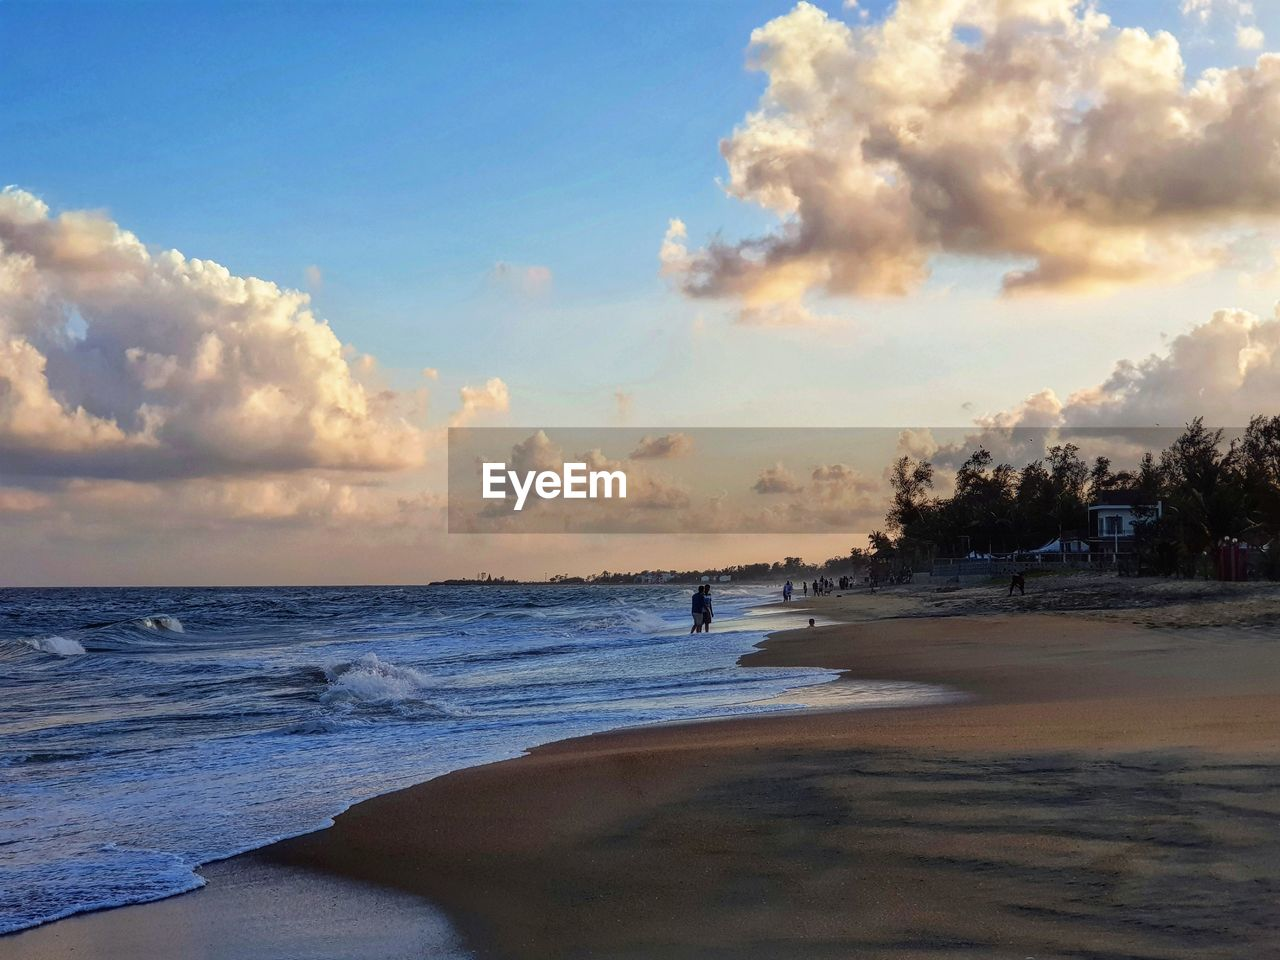 sea, beach, sky, water, nature, cloud - sky, scenics, beauty in nature, horizon over water, sunset, tranquility, tranquil scene, outdoors, wave, sand, no people, travel destinations, day